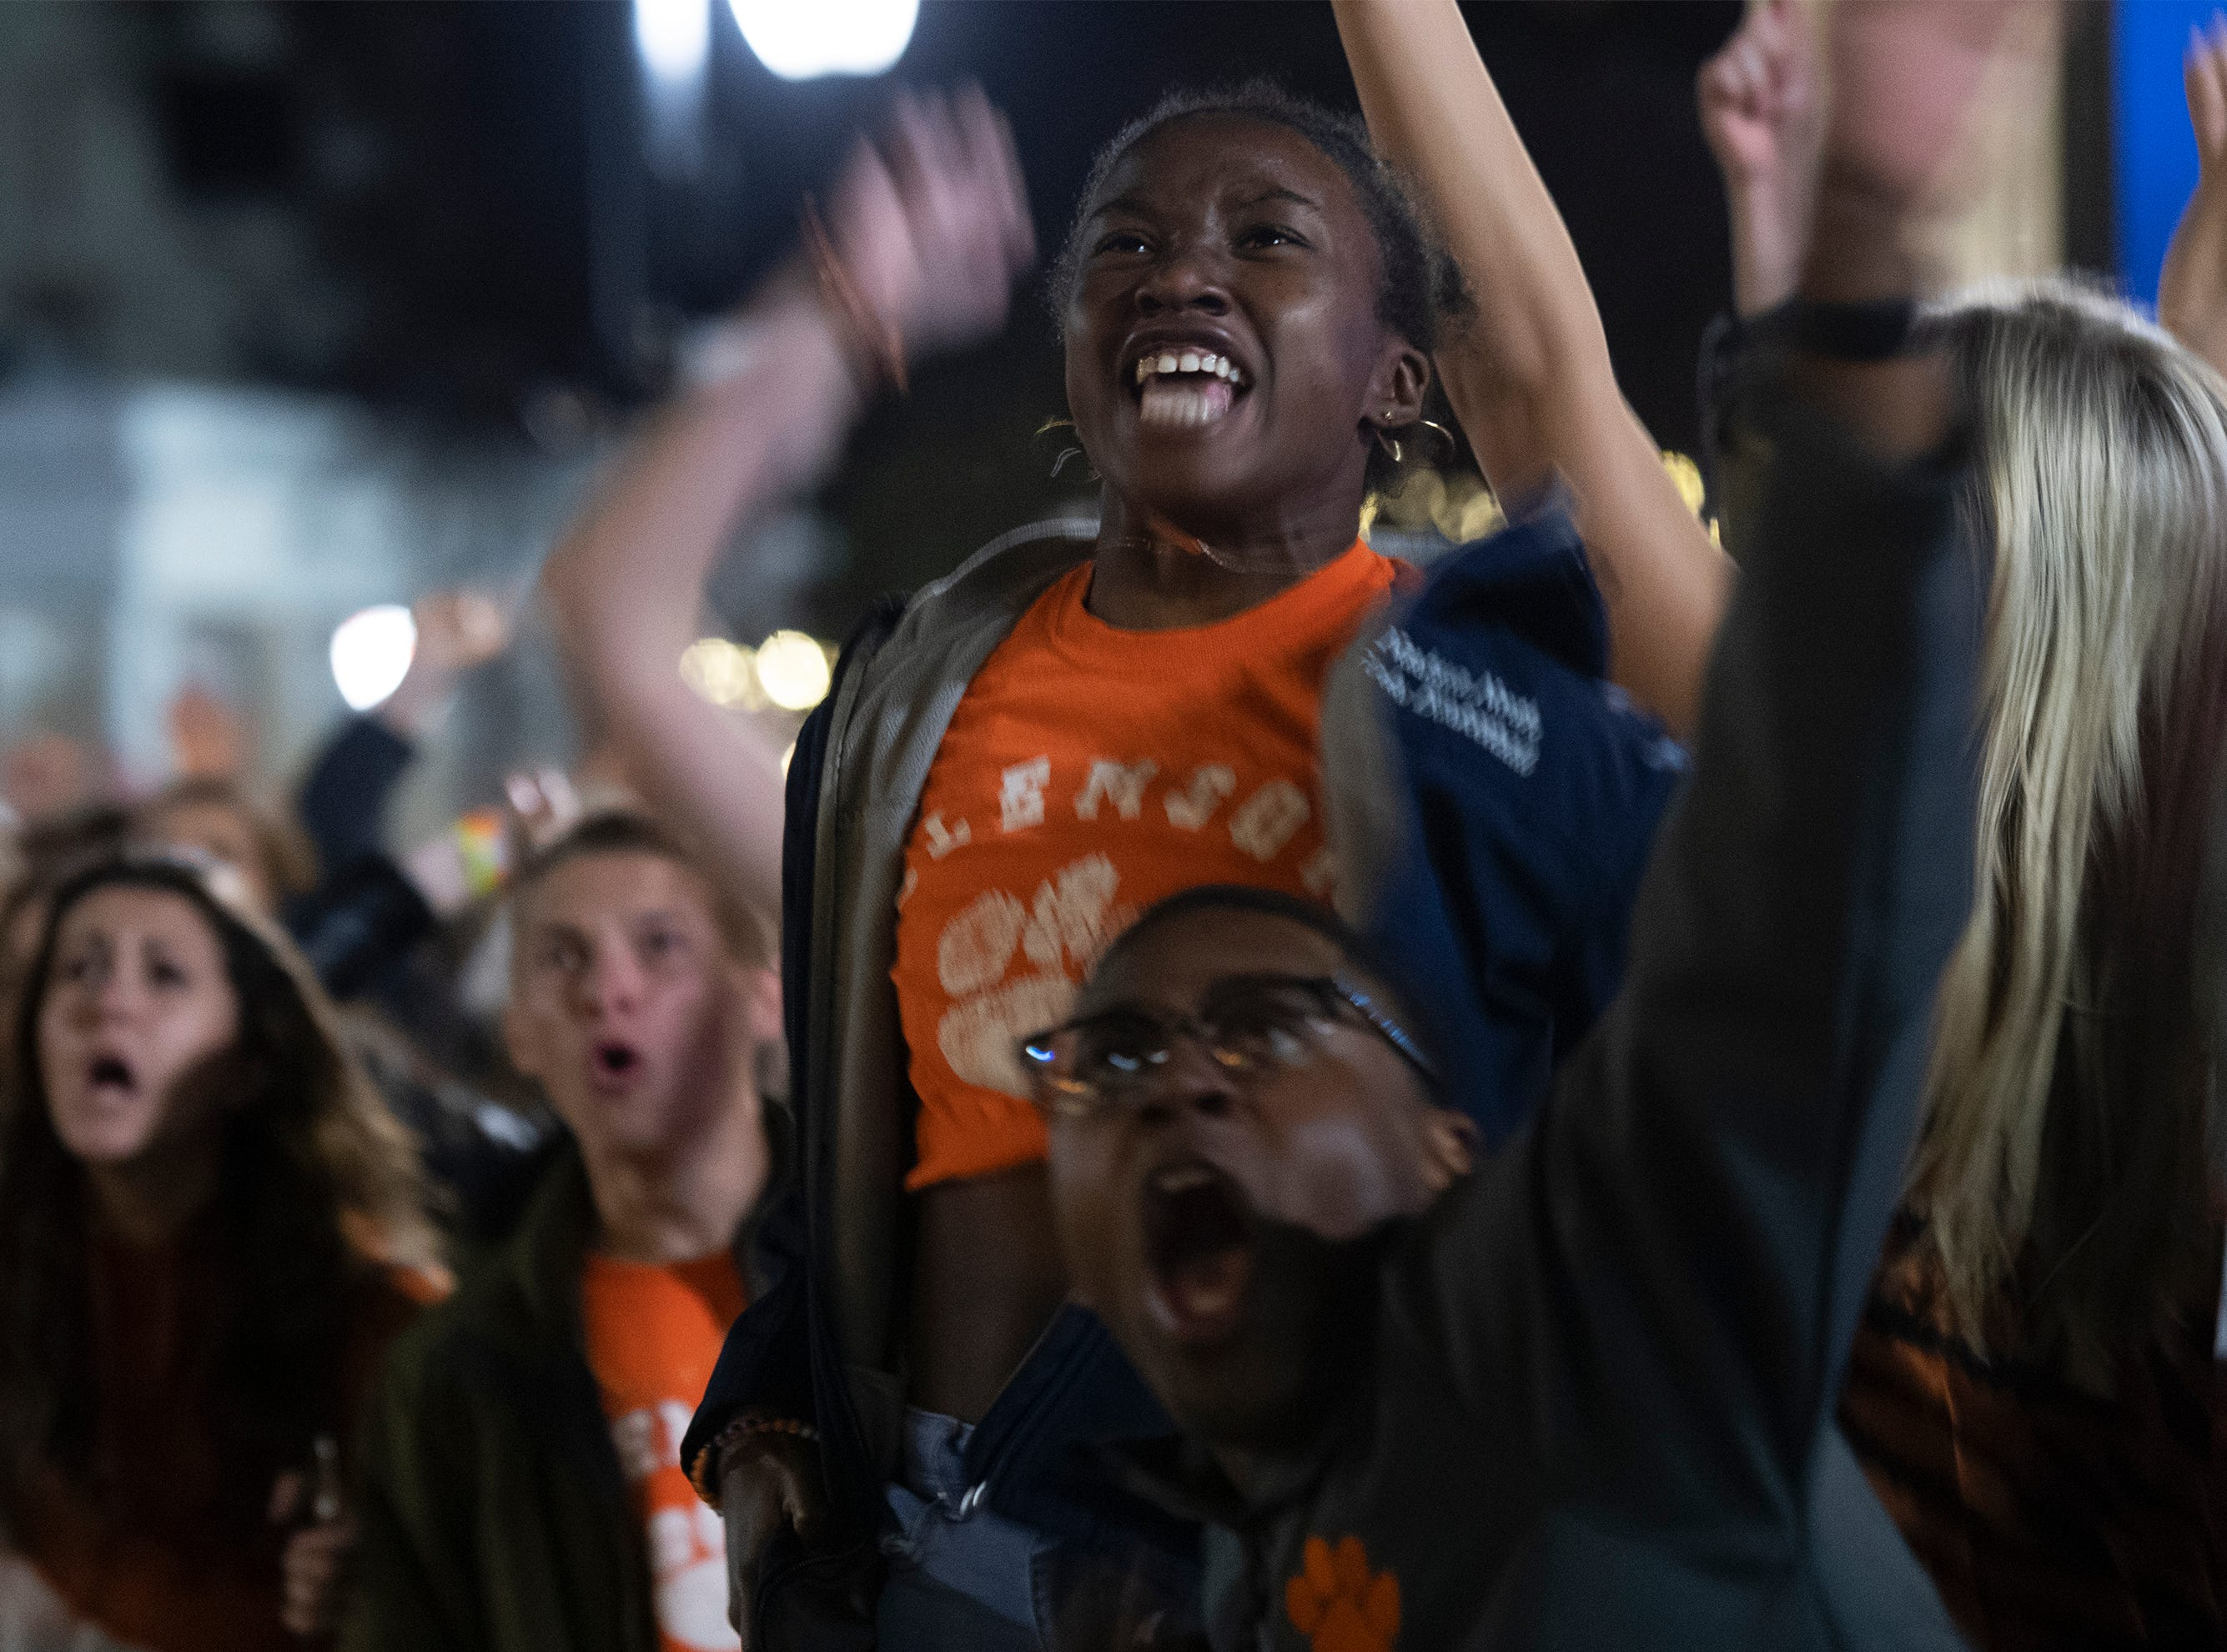 Freshman Alana Choate, 19, cheers while Clemson plays Alabama in the College Football Playoff National Championship Monday, Jan. 7, 2019.